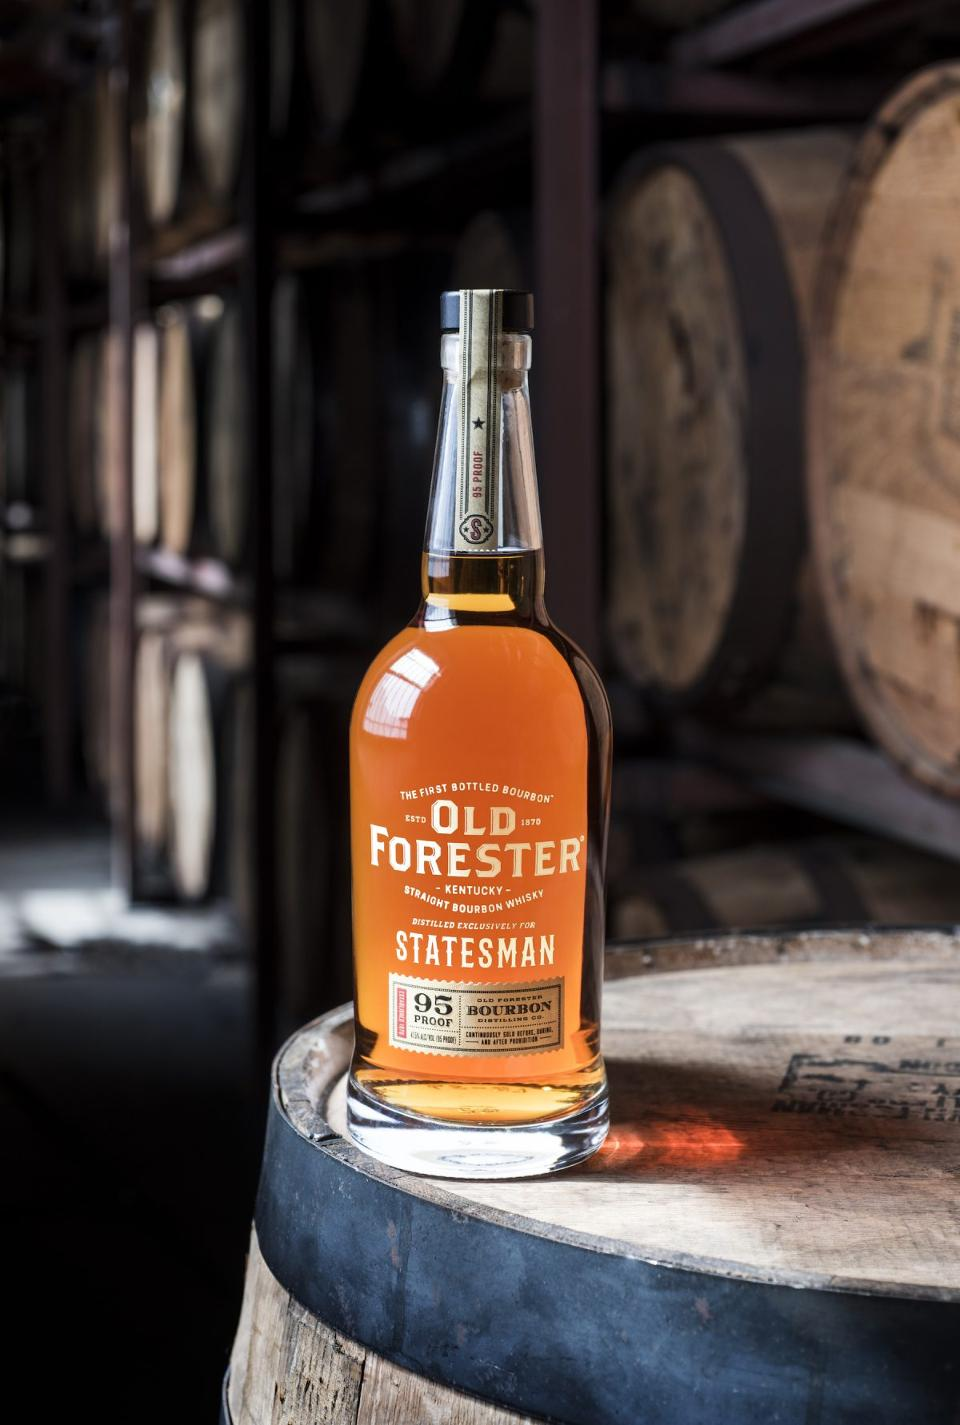 Old-Forester-Statesman-Bottle-Shot-2-1200x1782